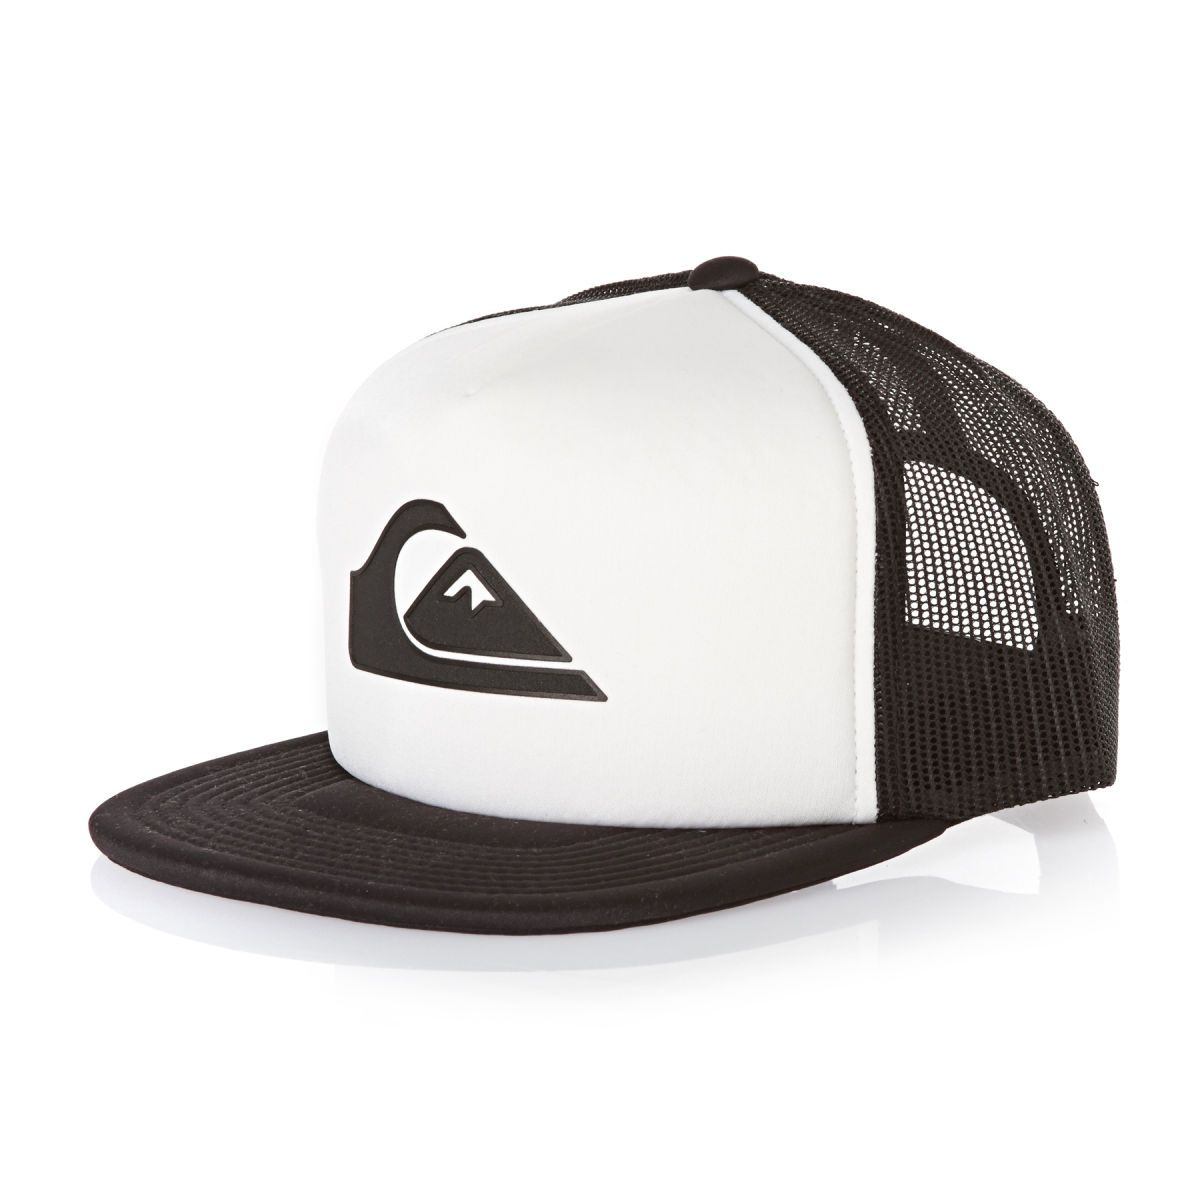 quiksilver trucker hat - Google Search  9abe9c085e8